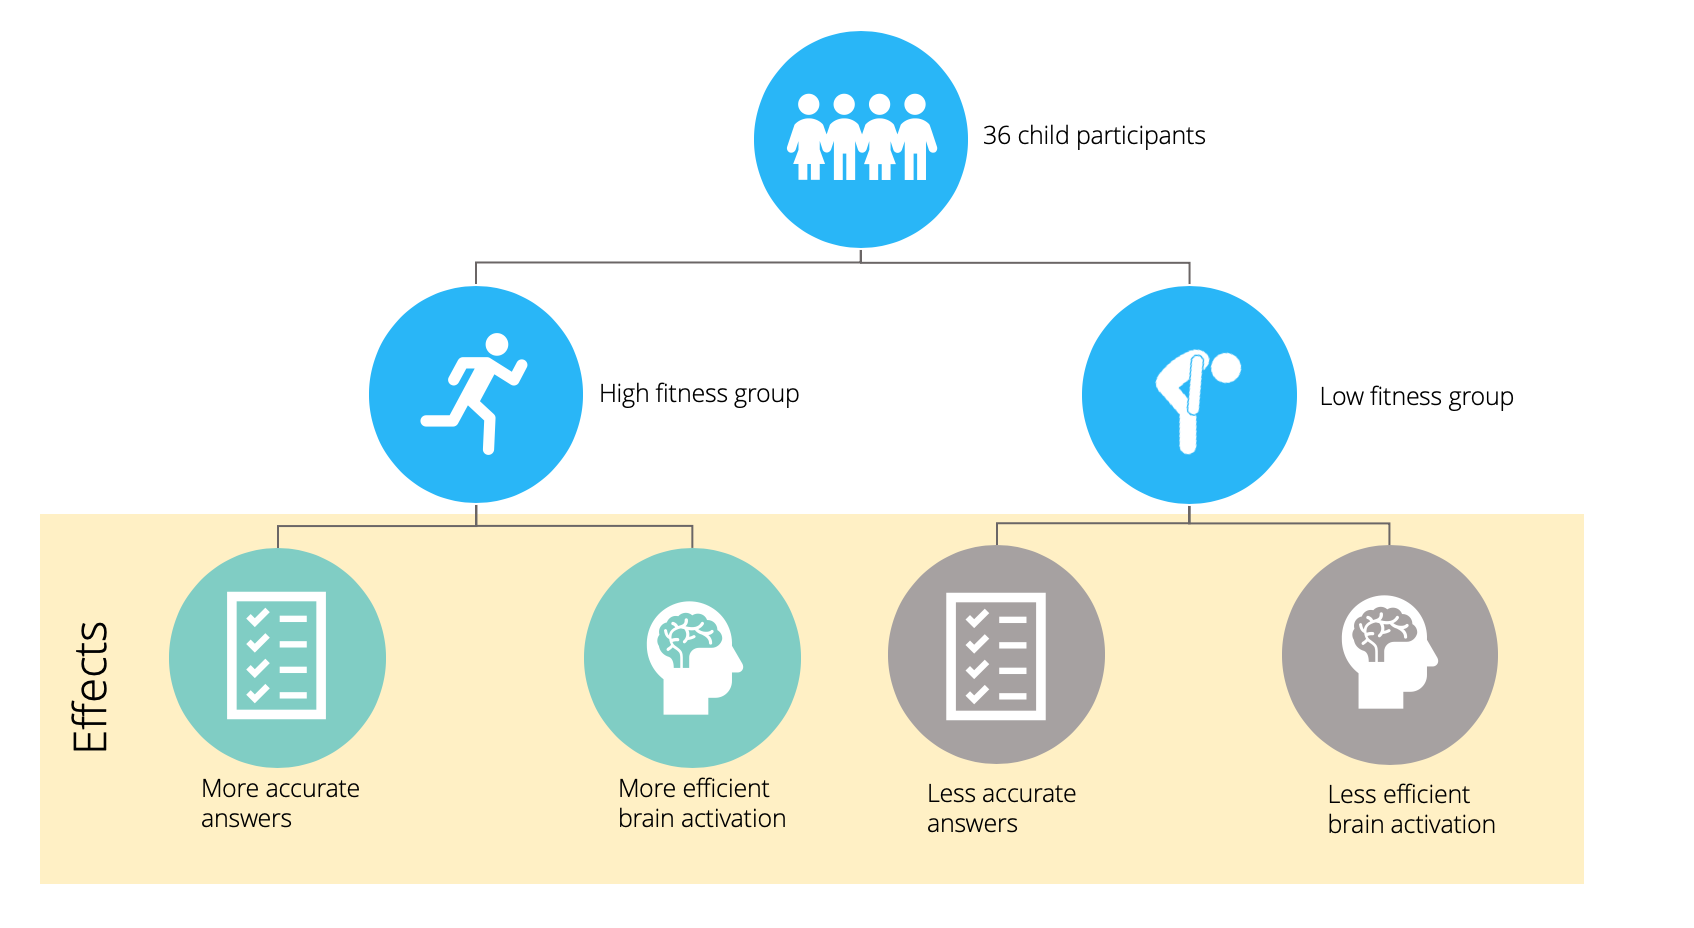 Infographic of study demonstrating the association of aerobic fitness on cognitive functionality in children.